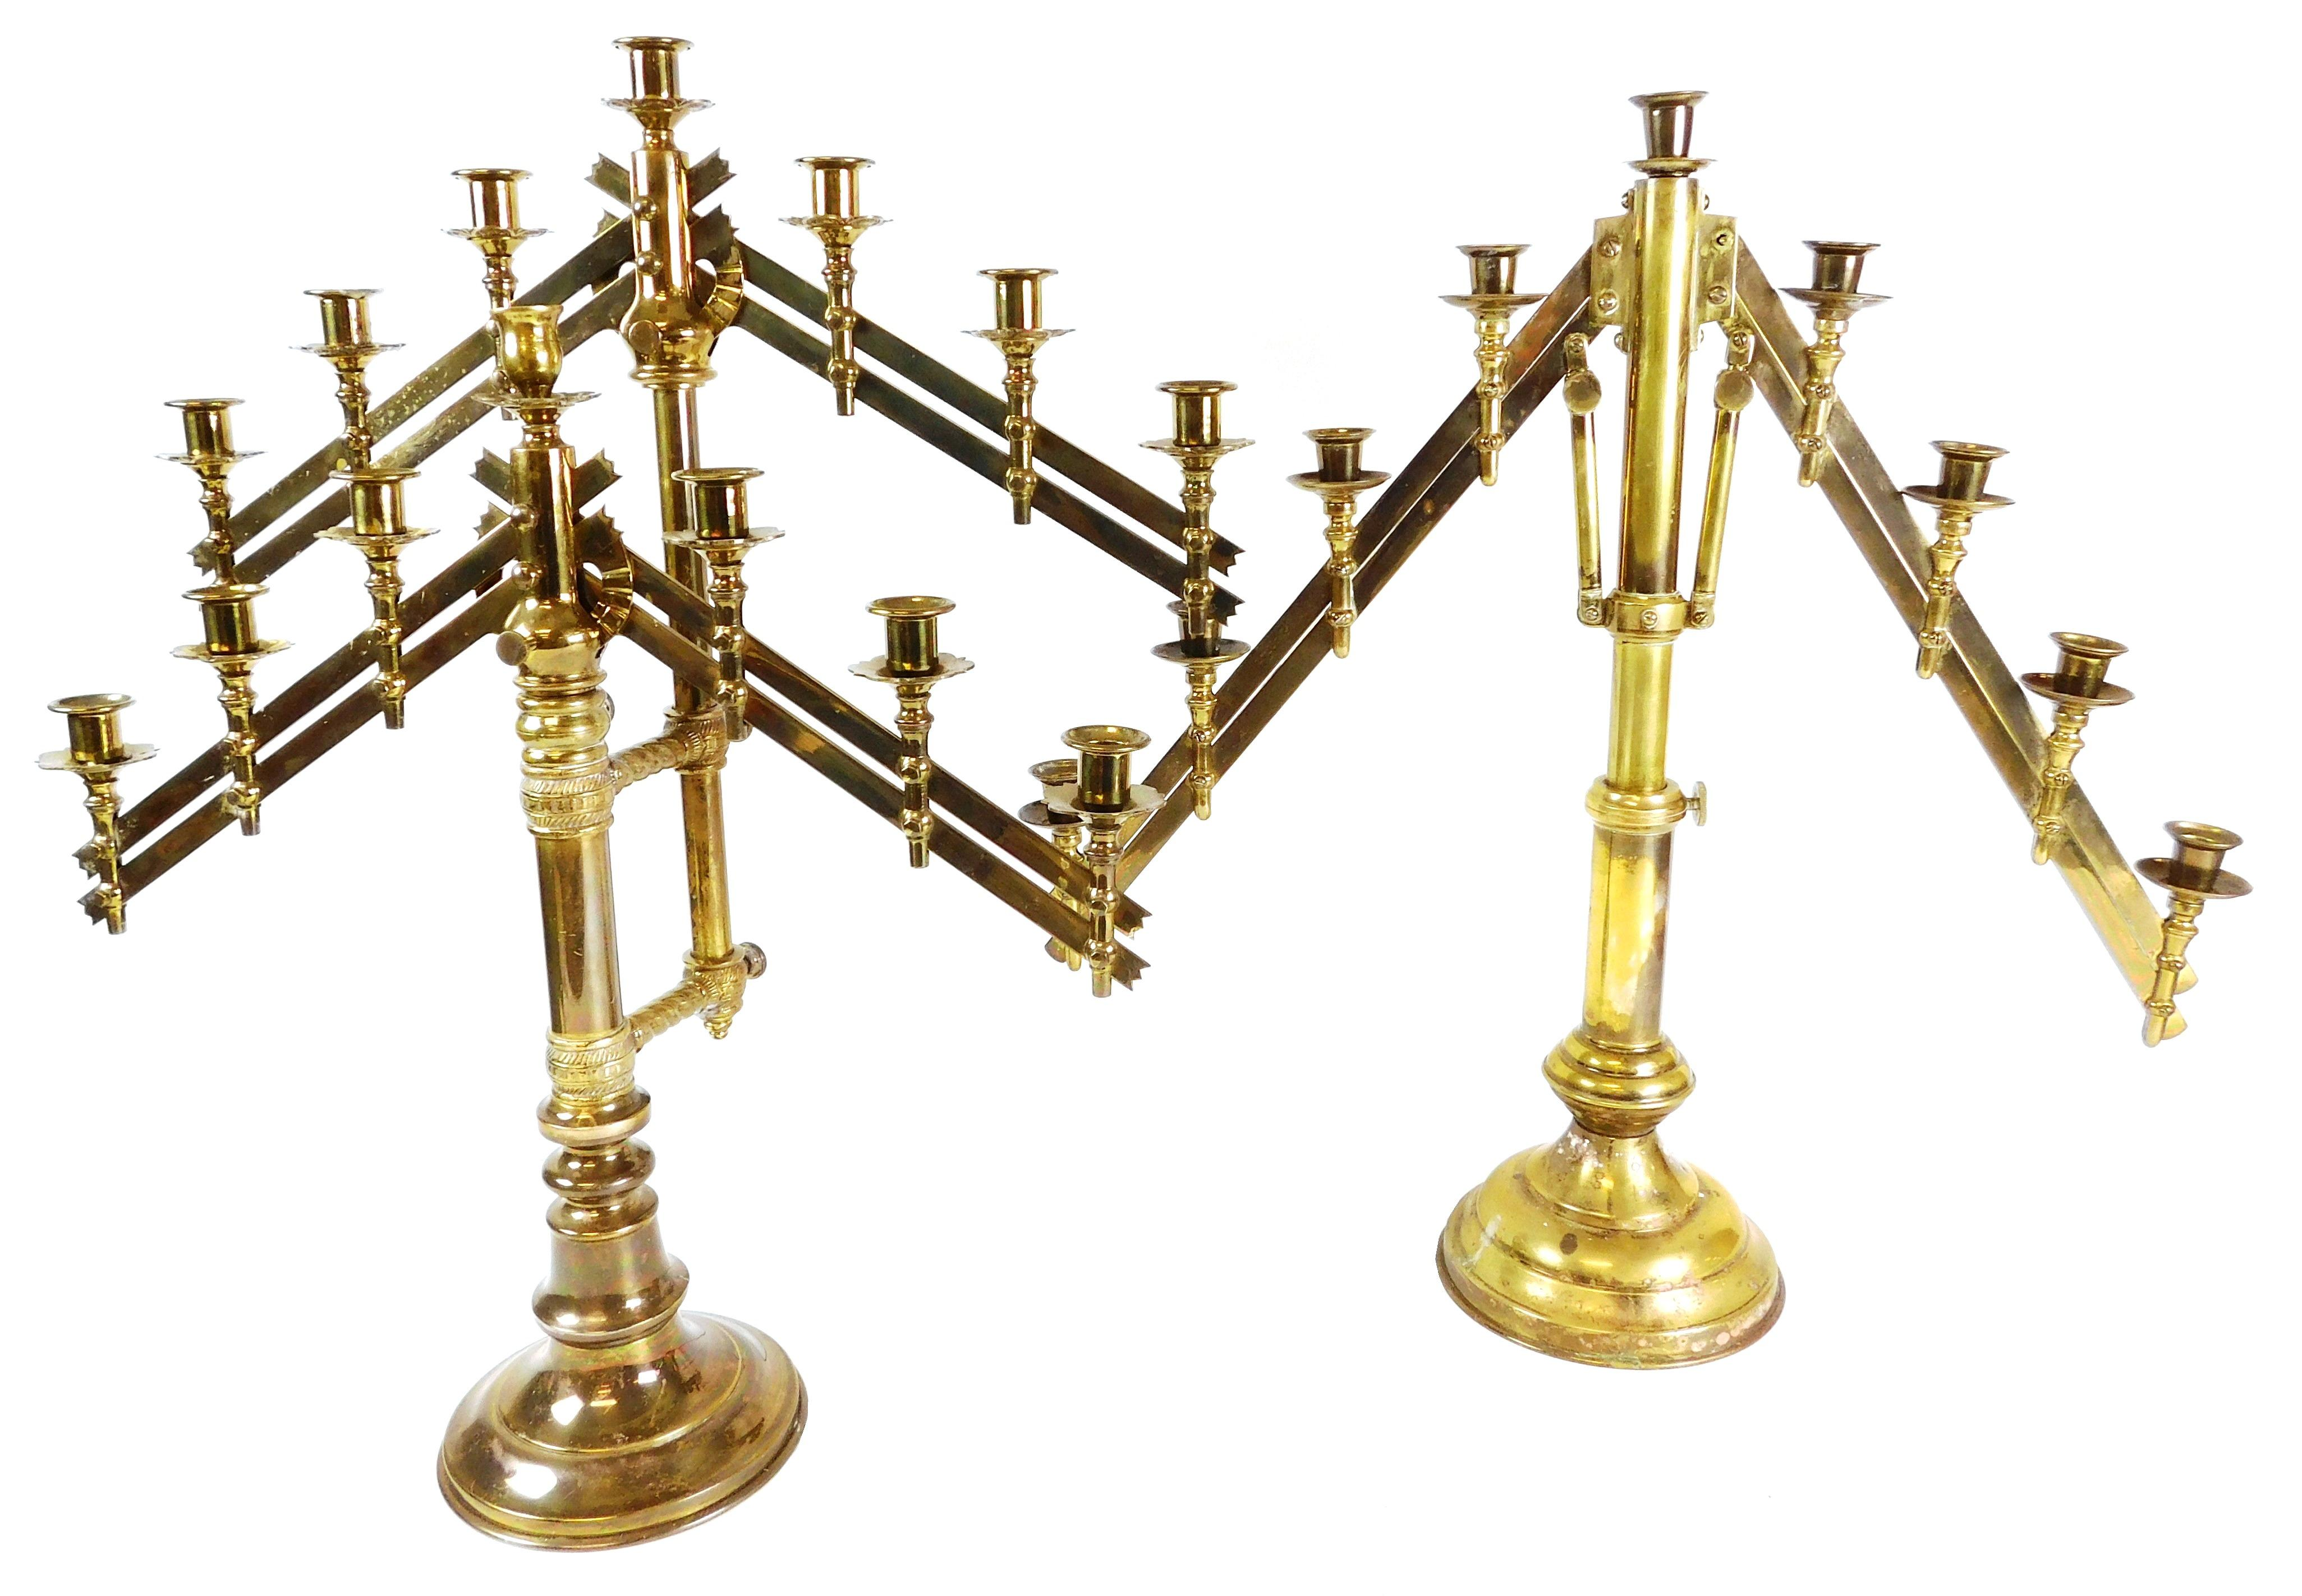 Two adjustable brass candelabras; arm on each side is movable up and down, lights along arm adjust to height as it changes, one with...